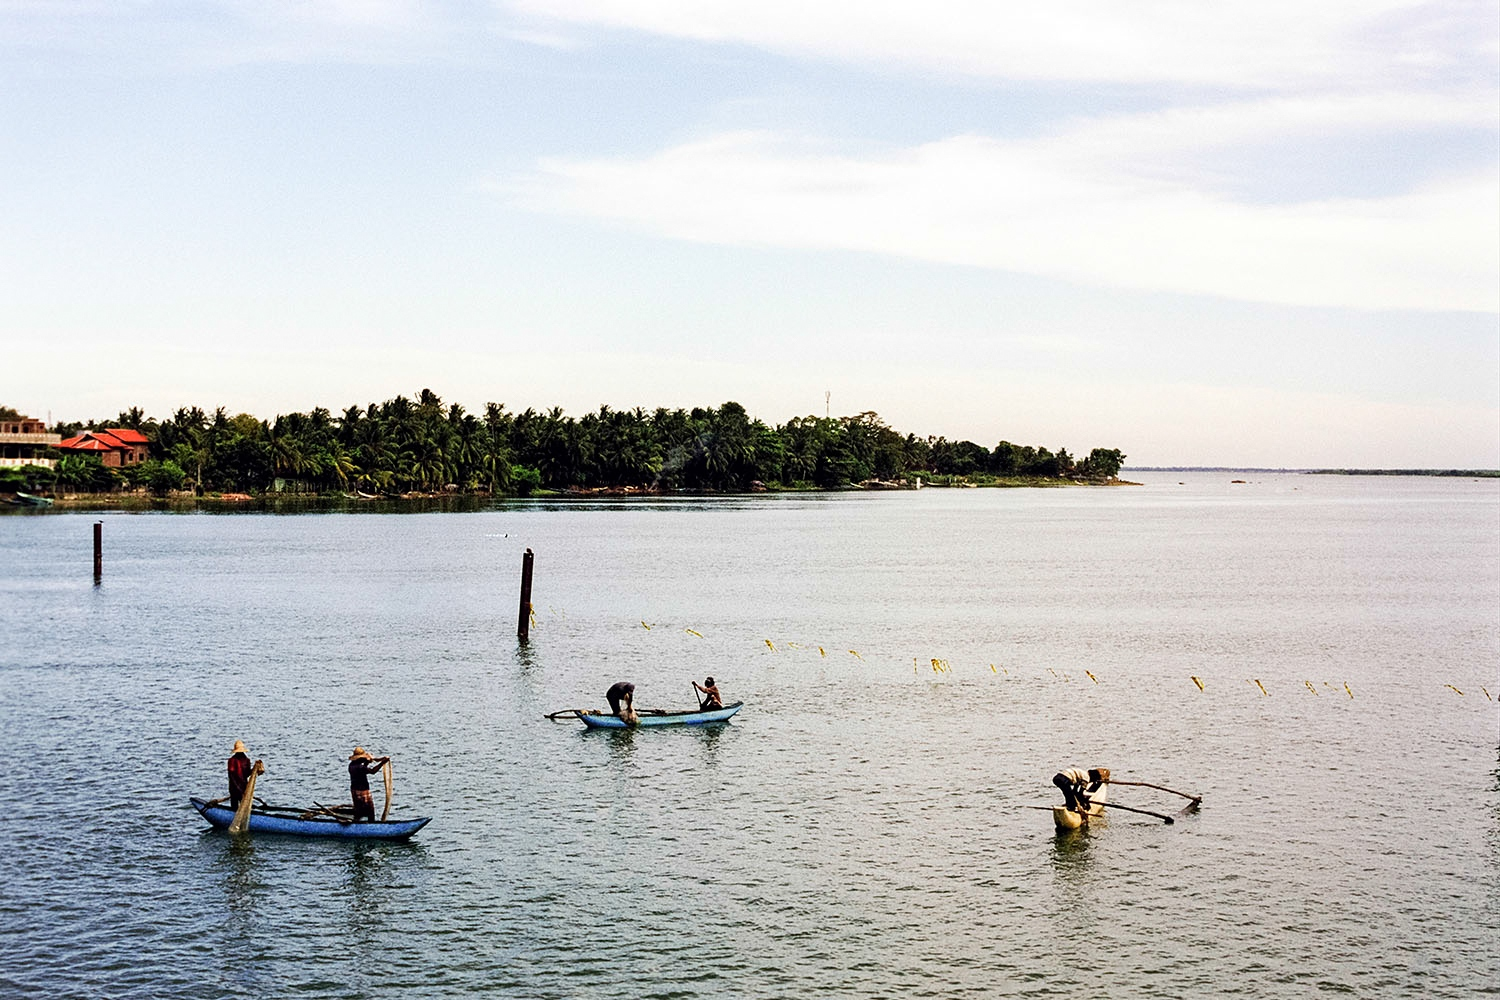 Fisherman in Batticaloa, in the Eastern Province. The villages around the lagoons and ocean were badly affected by the 2004 tsunami, thousands of people lost their lives.